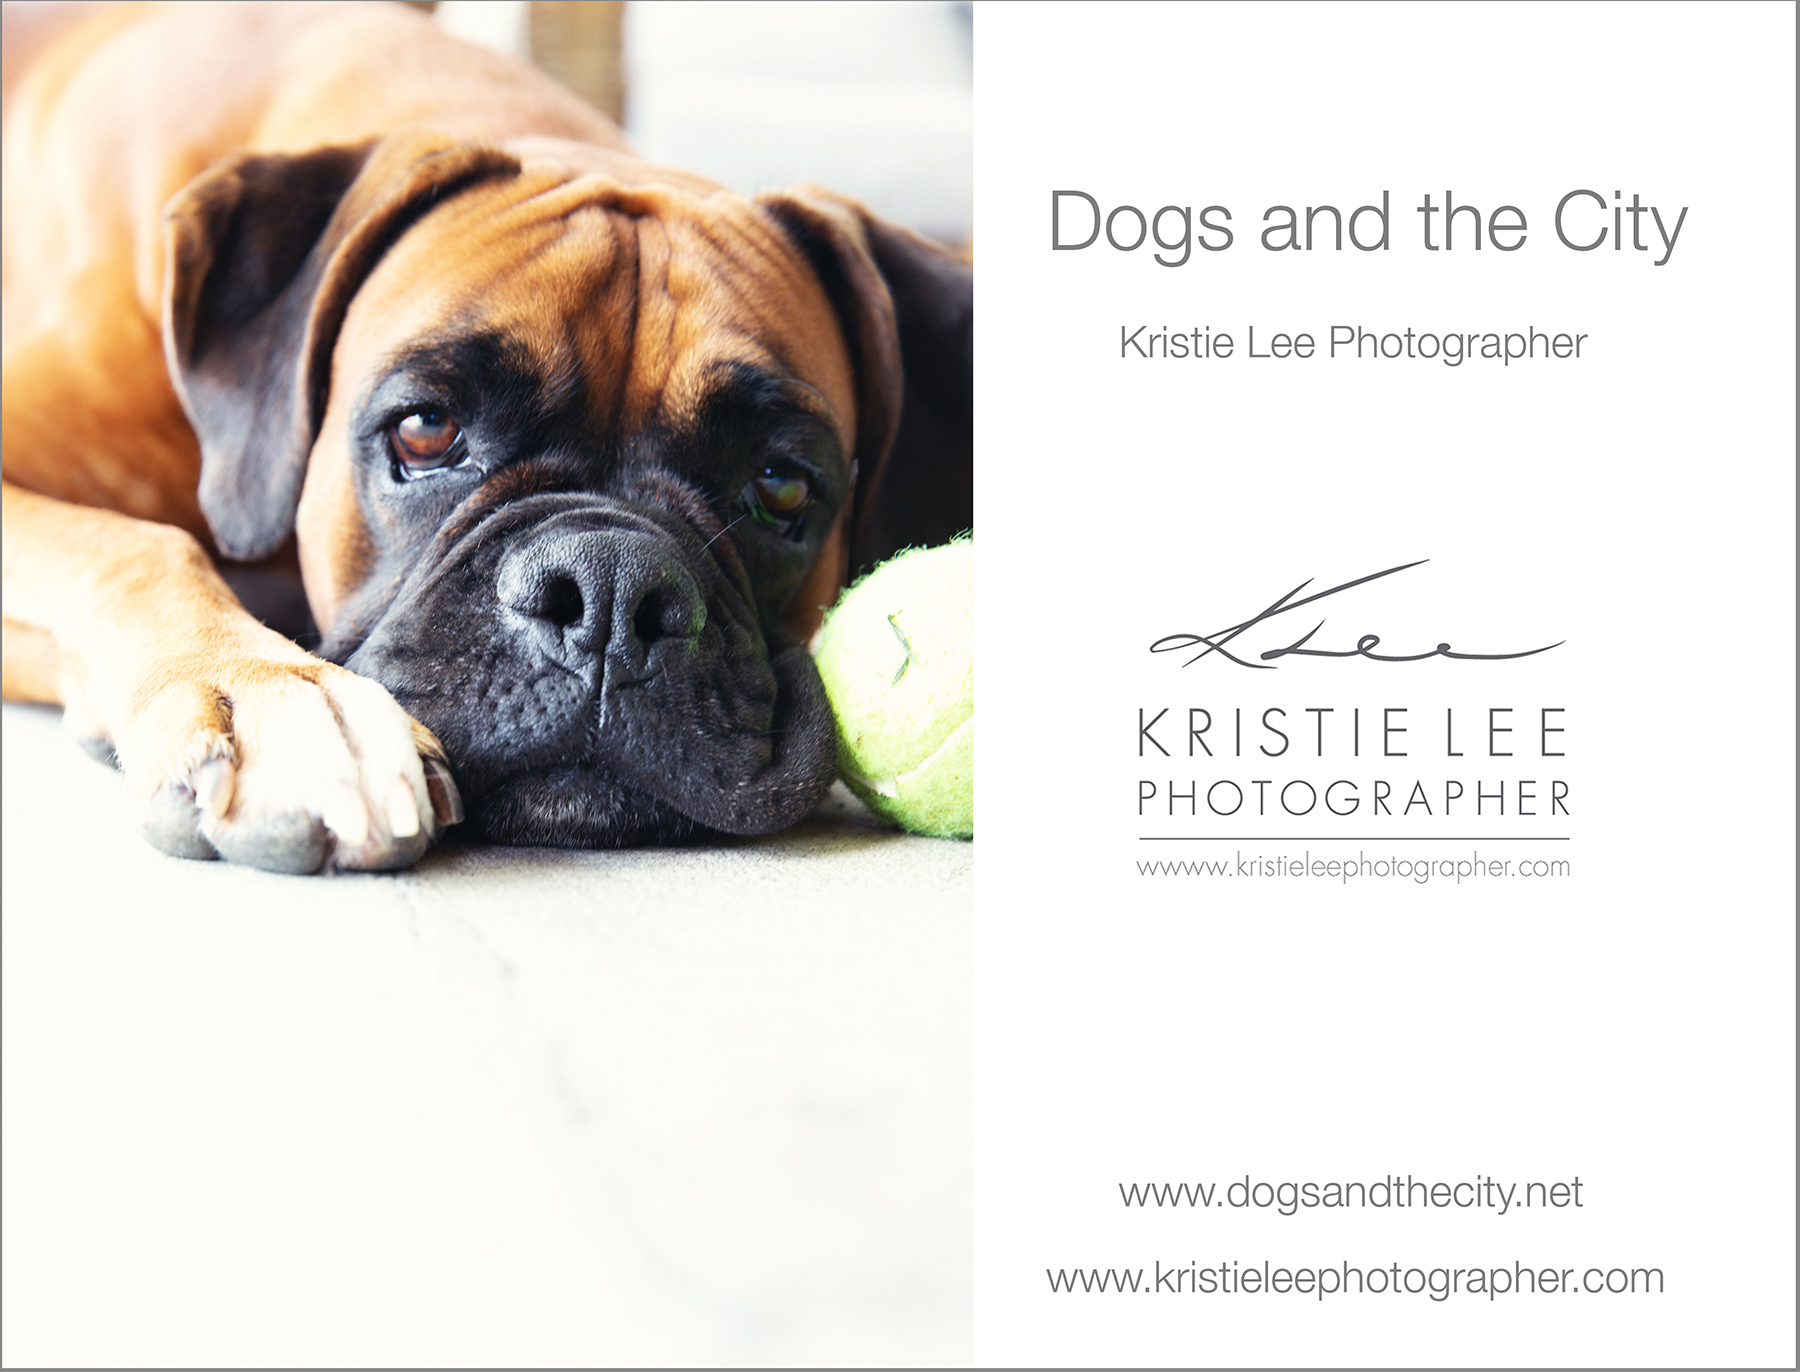 Nixon dogs_and_the_city kristie_lee_photographer